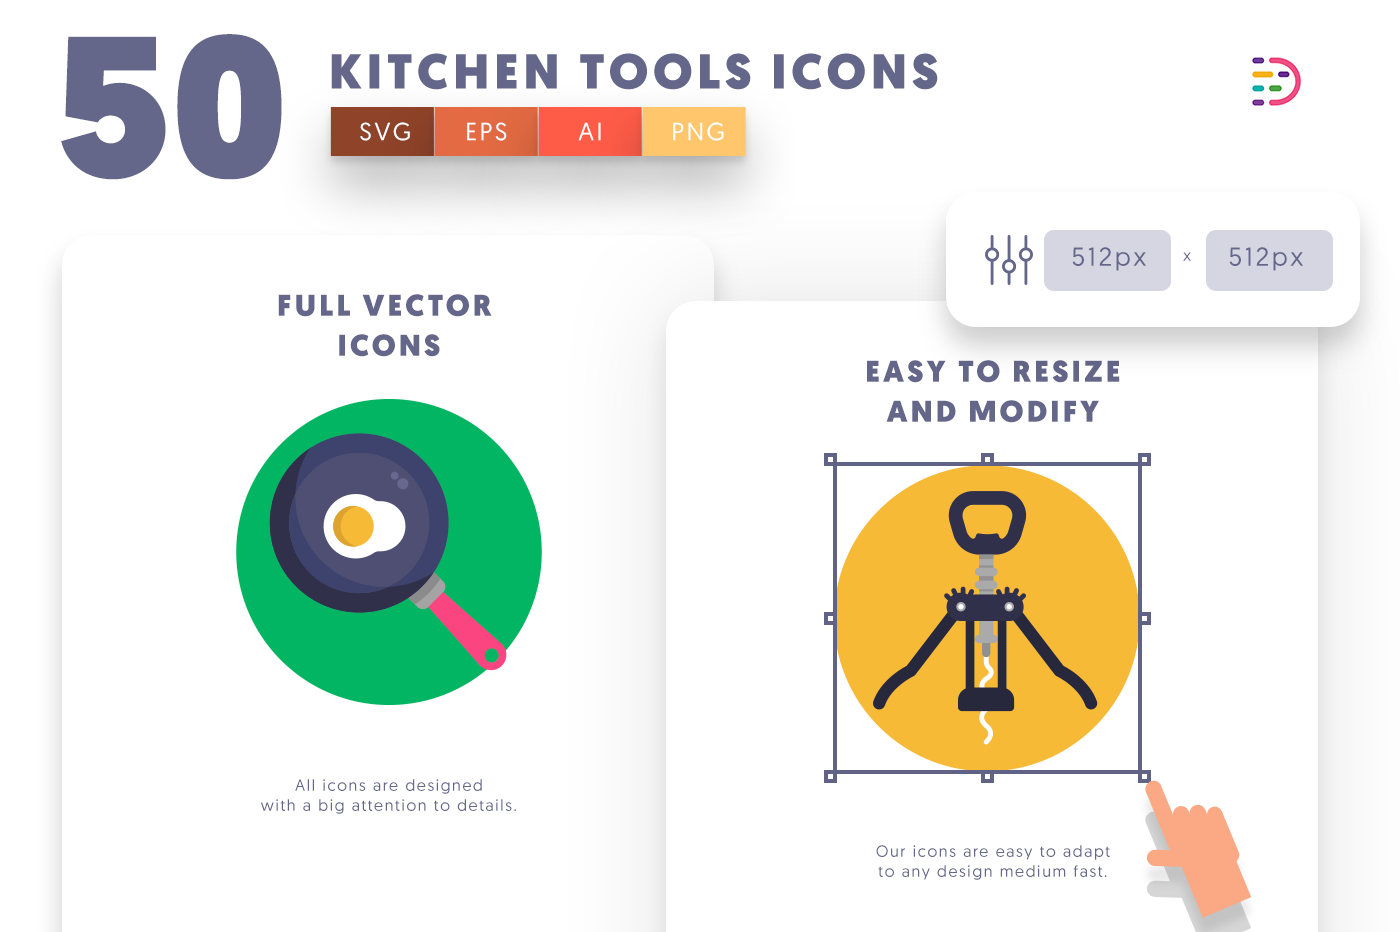 Full vector 50KitchenTools Icons